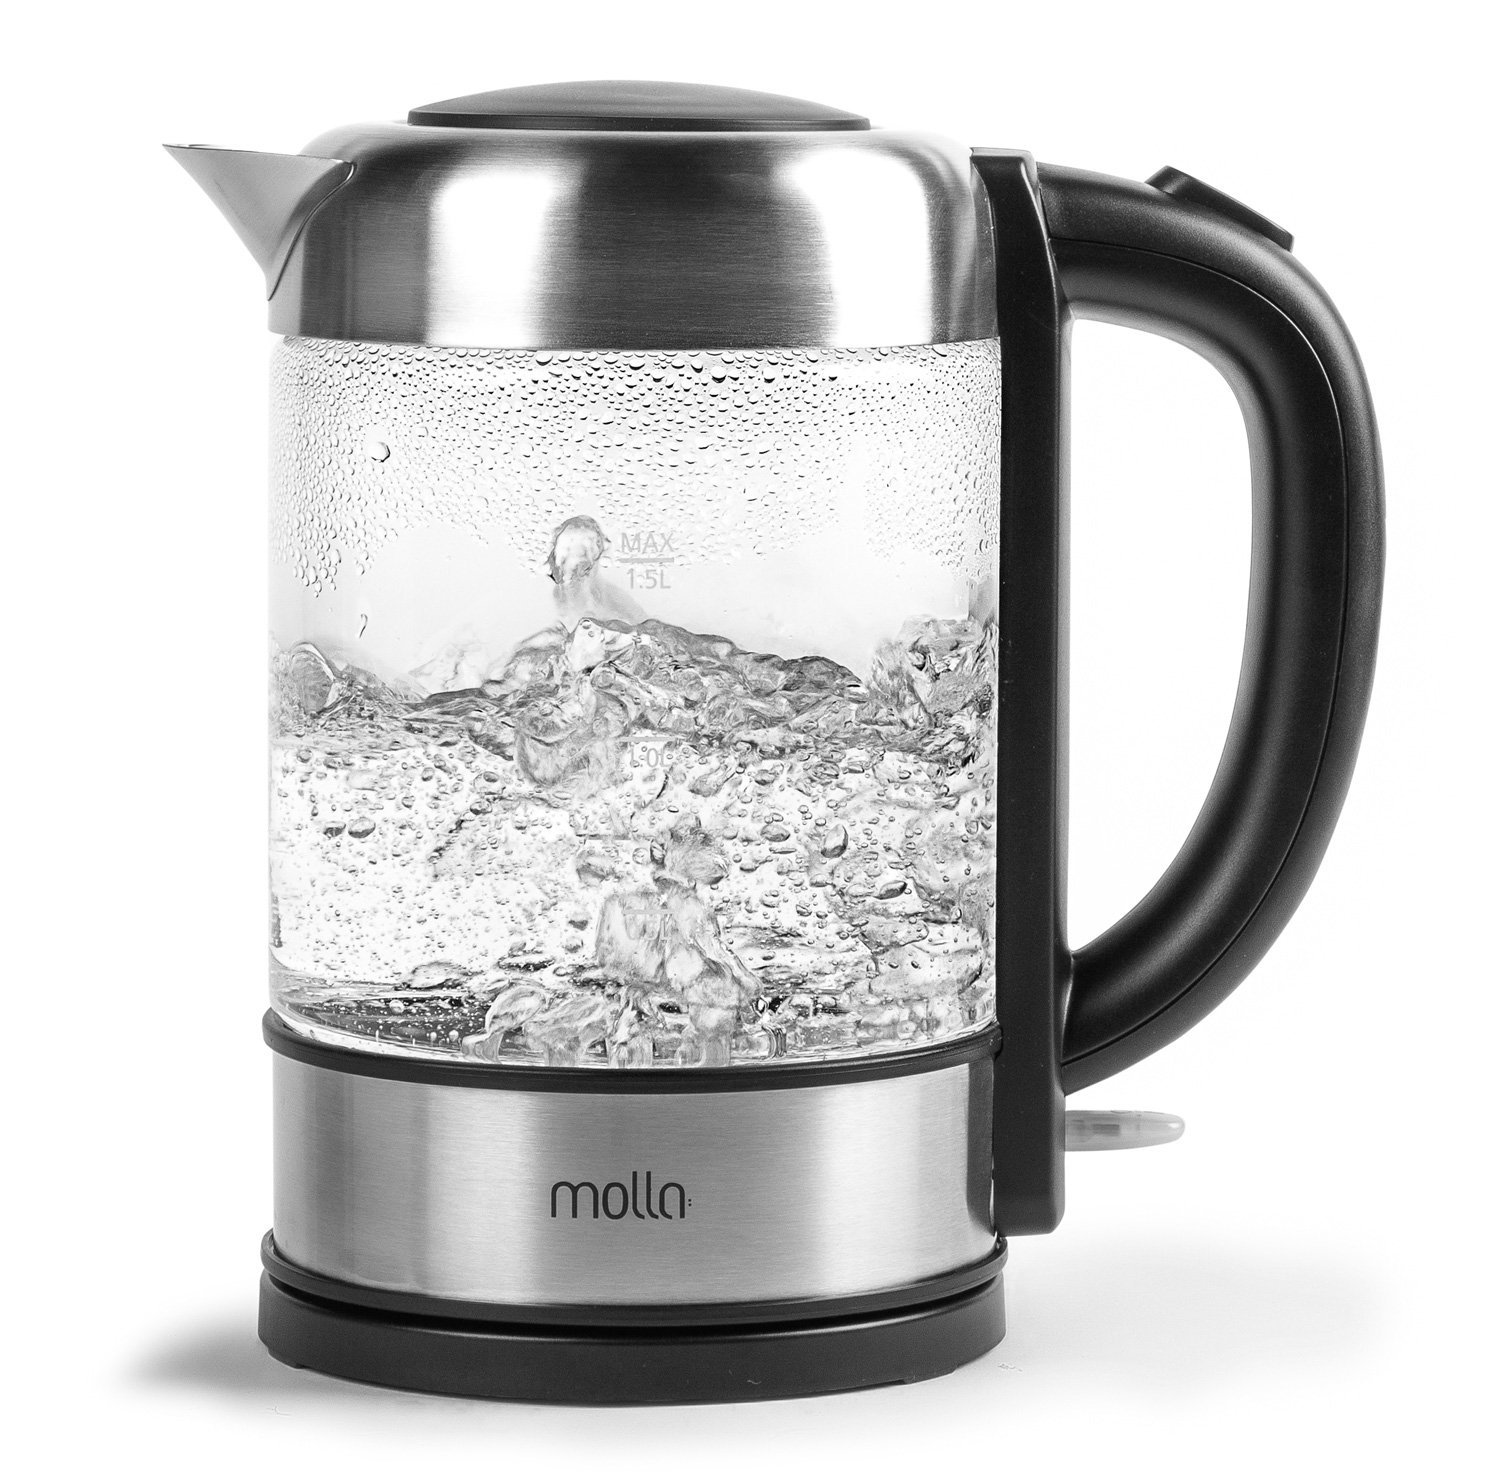 Molla glass kettle with temperature control